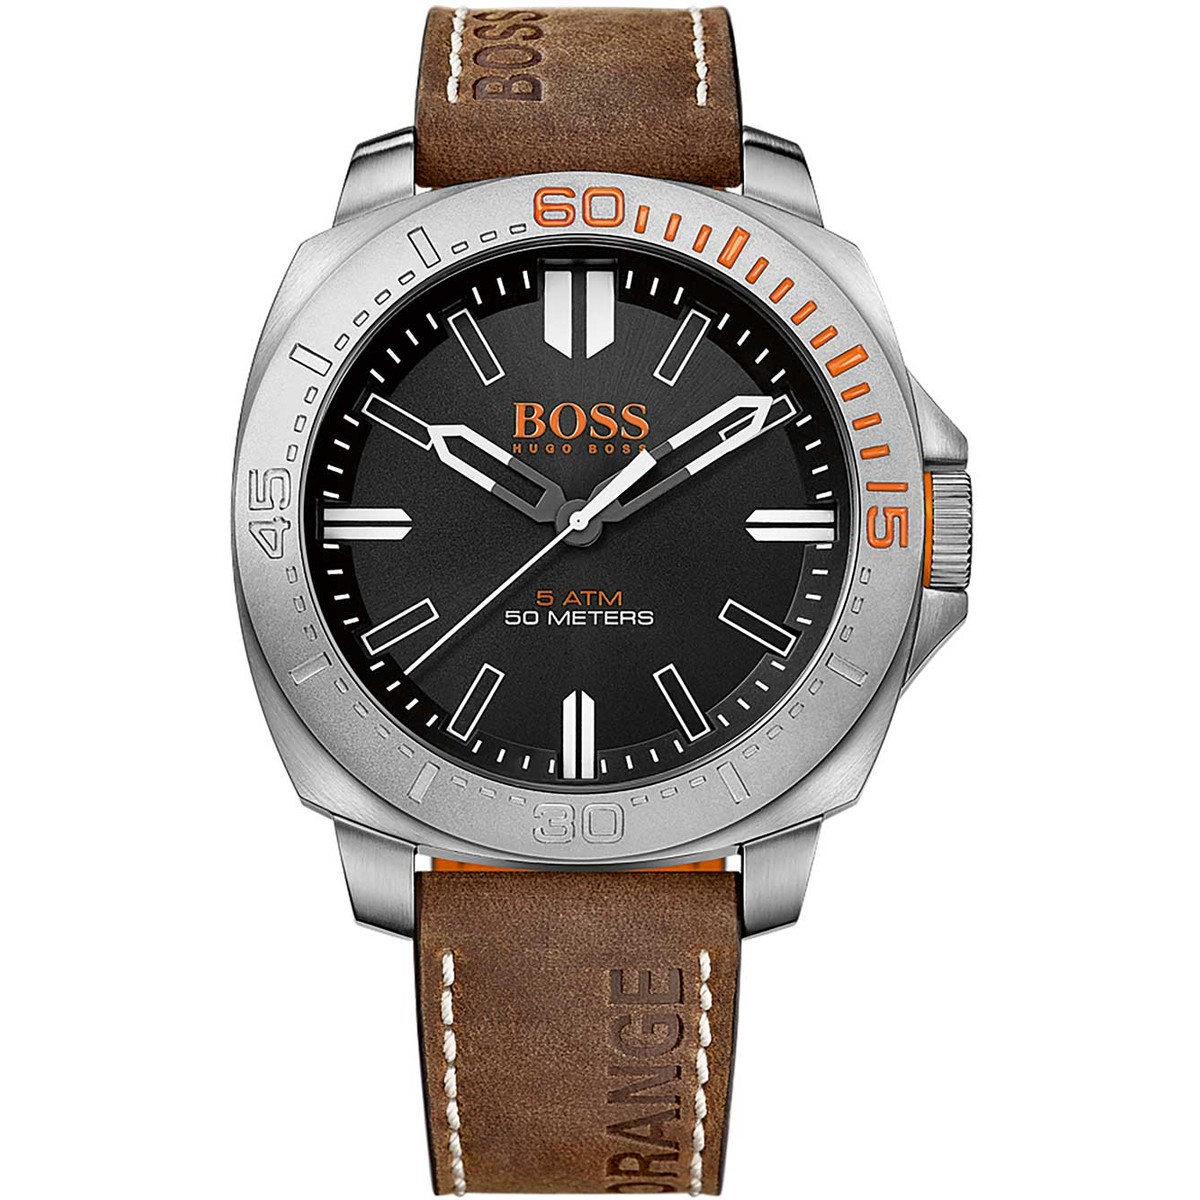 Ceas barbatesc Hugo Boss 1513294 de mana original